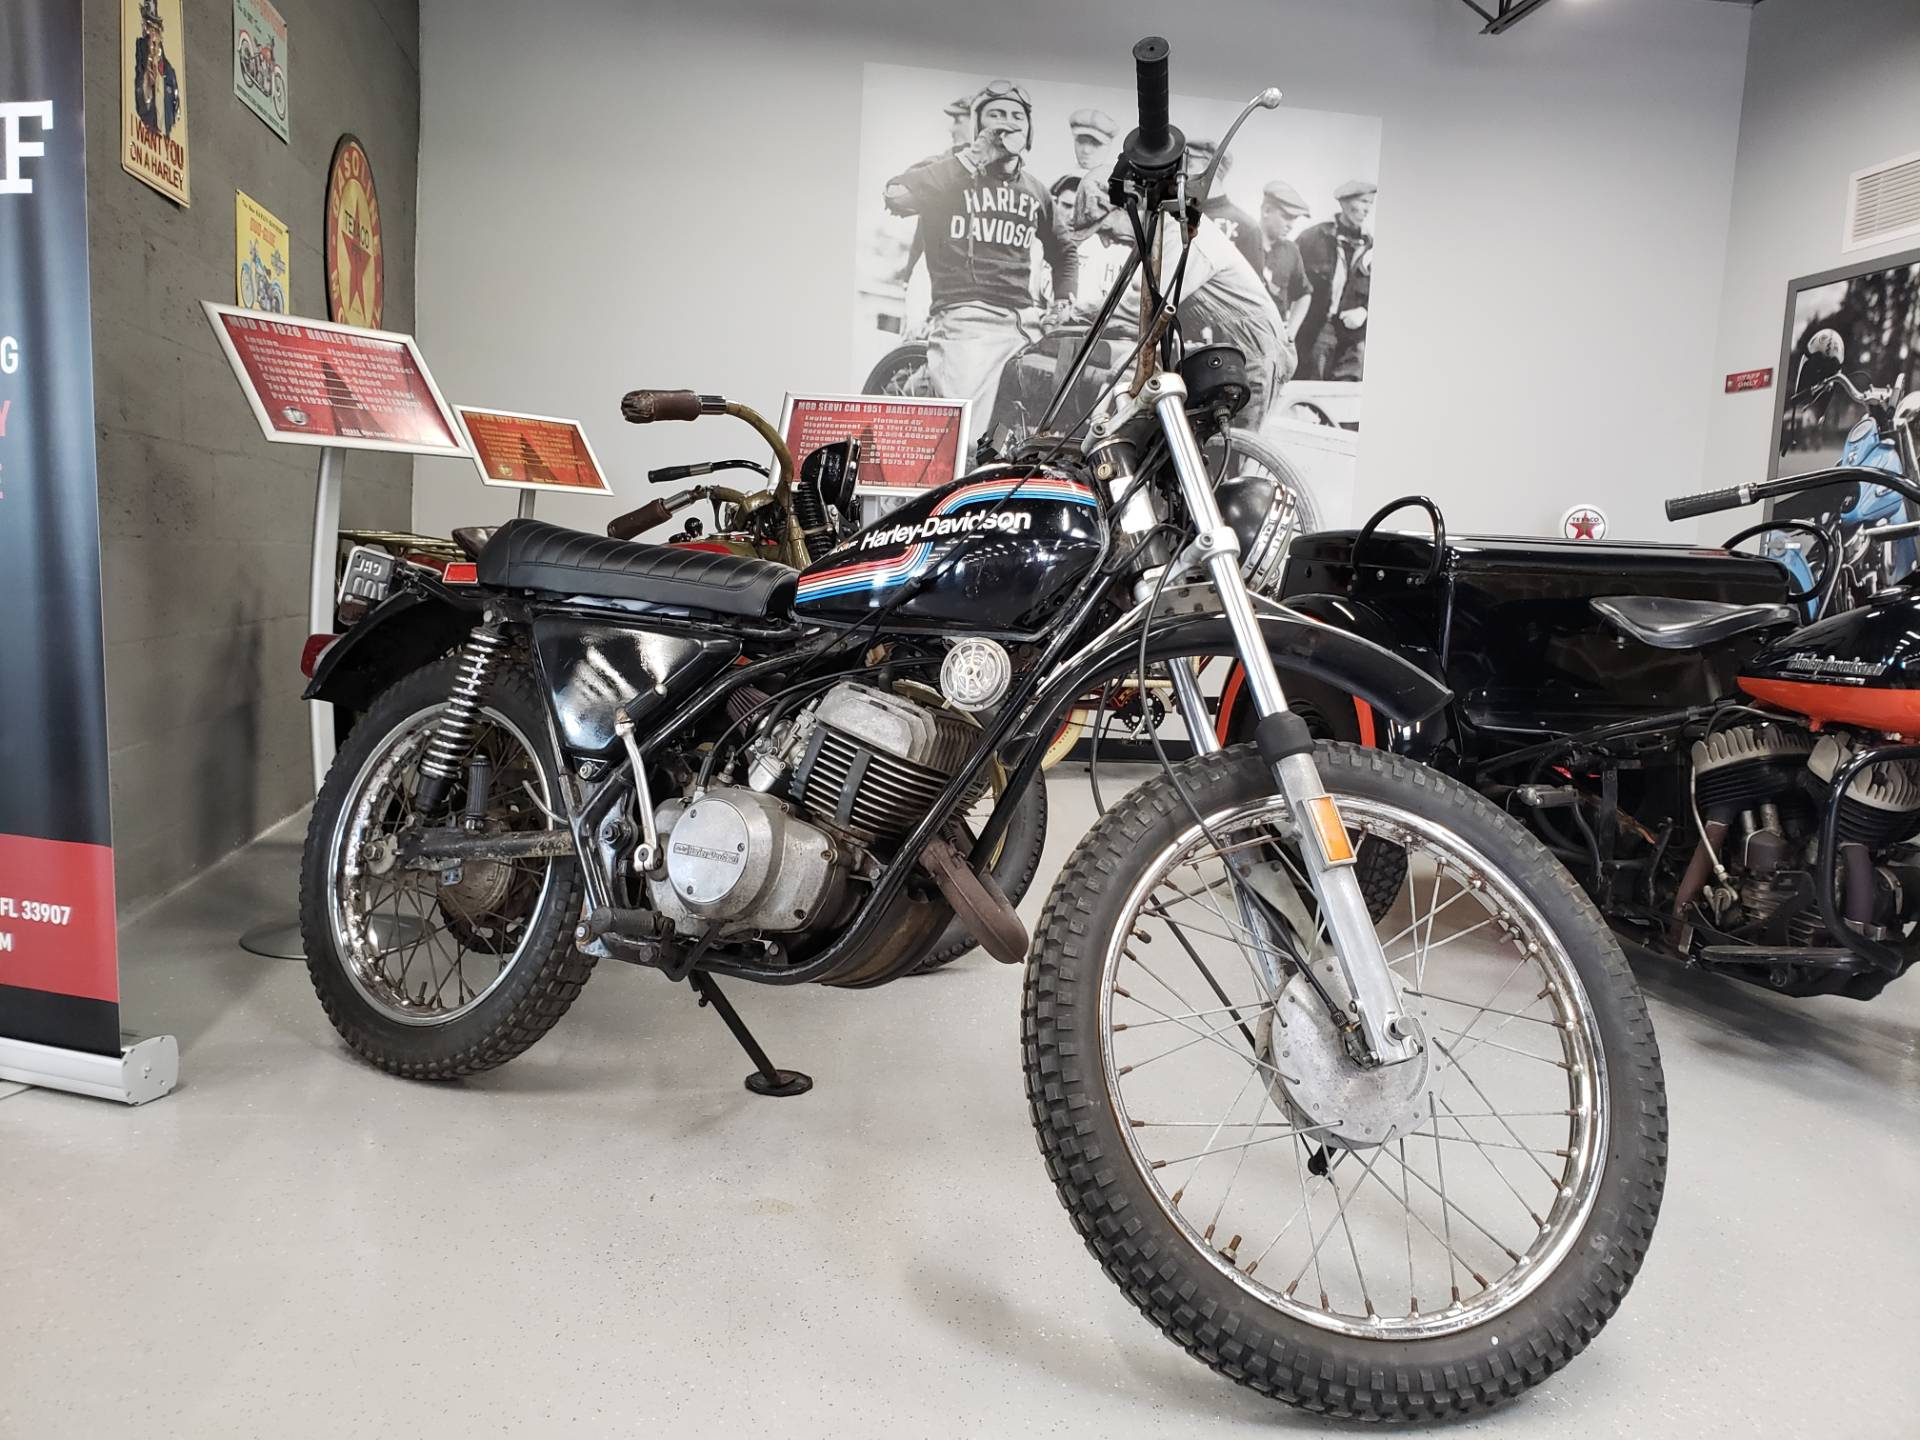 1975 Harley-Davidson SX 175 in Fort Myers, Florida - Photo 1